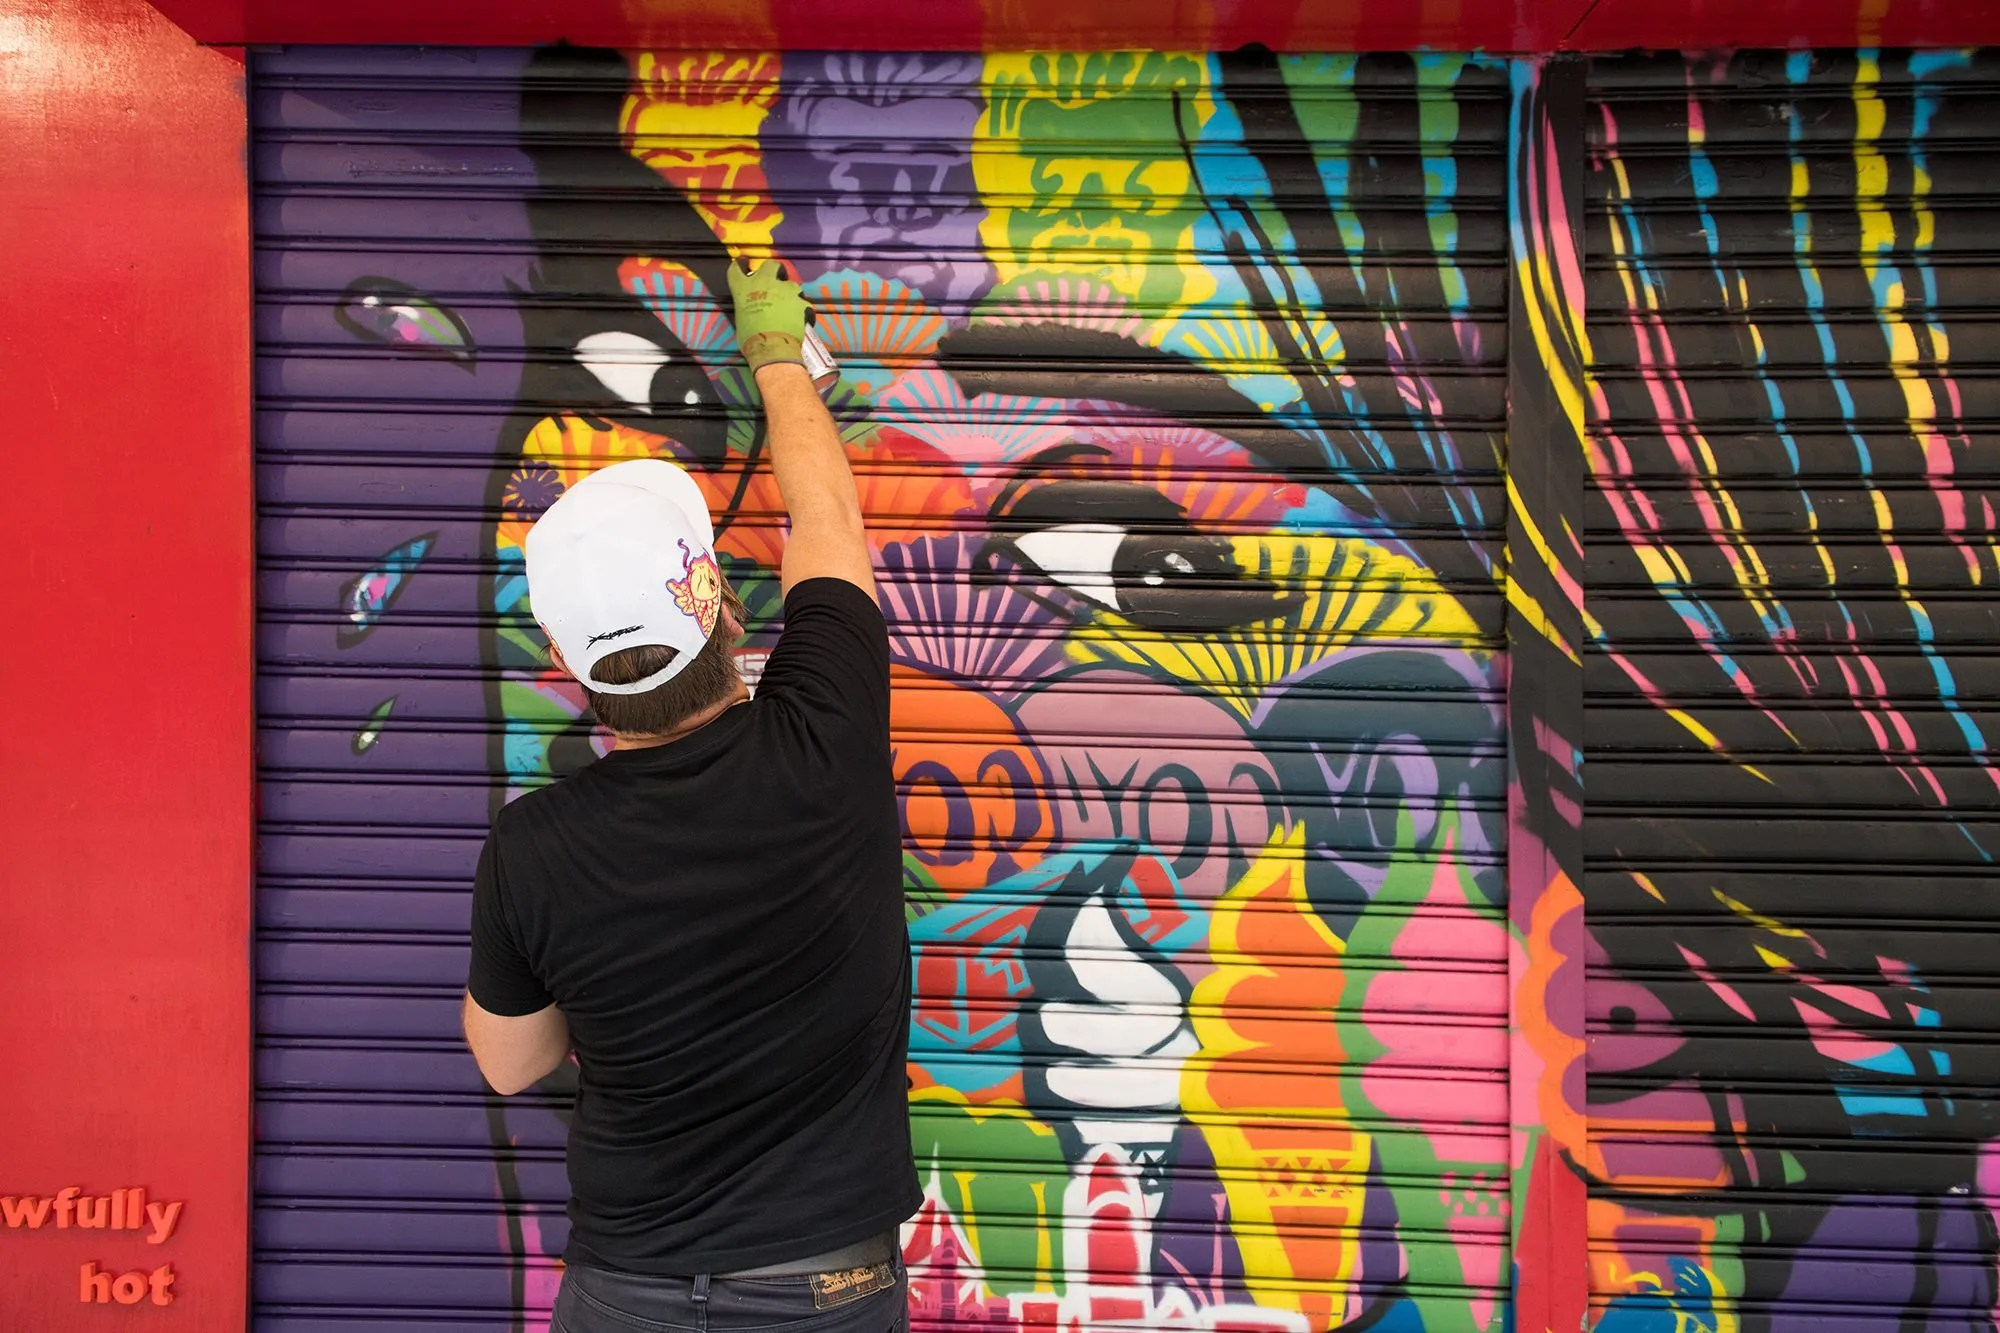 Get To Know The Stories Behind Hong Kong's Colourful Street Art